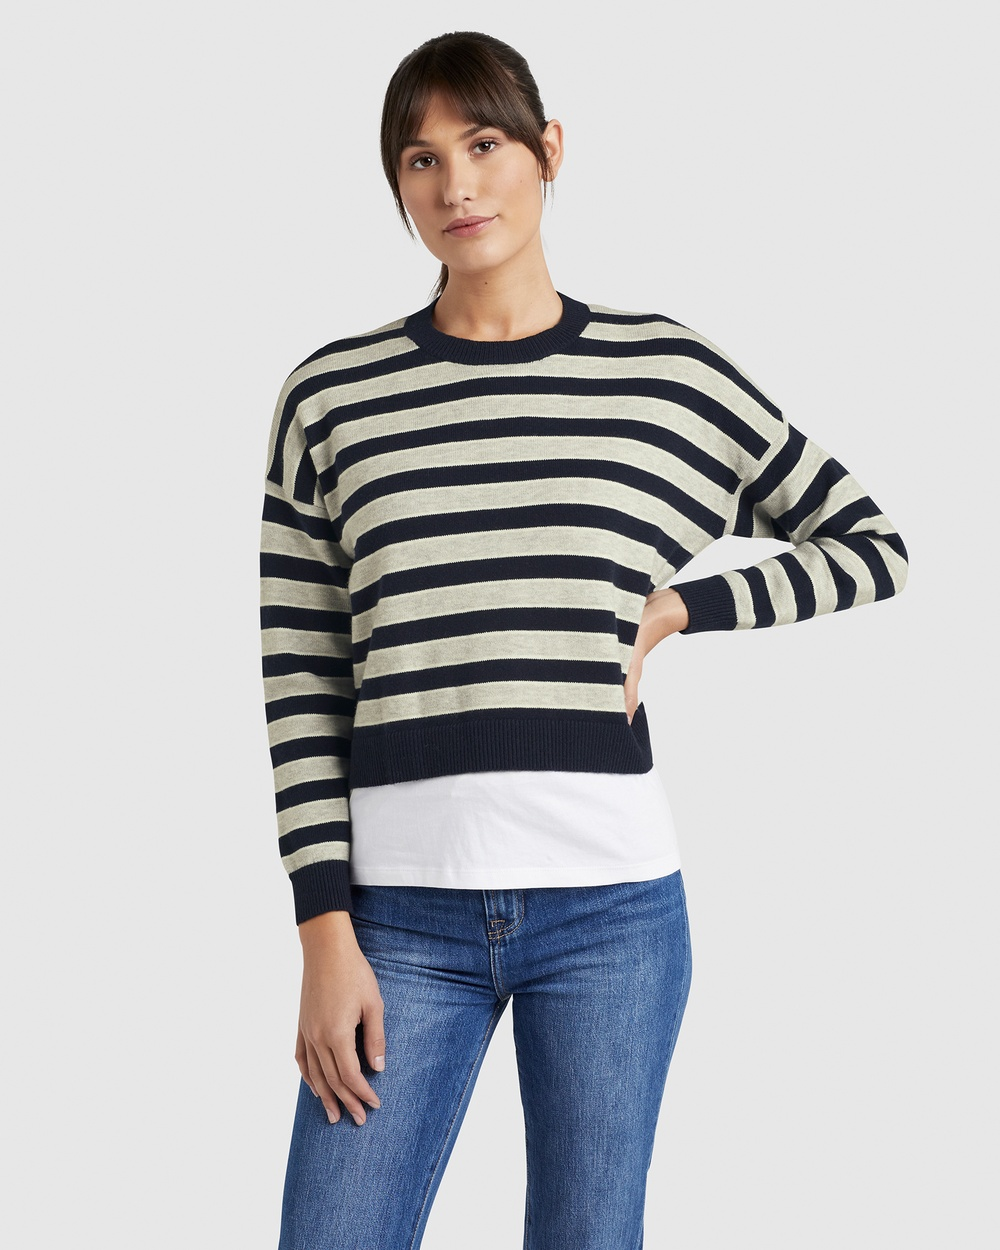 French Connection Stripe Boxy Knit Jumpers & Cardigans NAVY STRIPE Australia